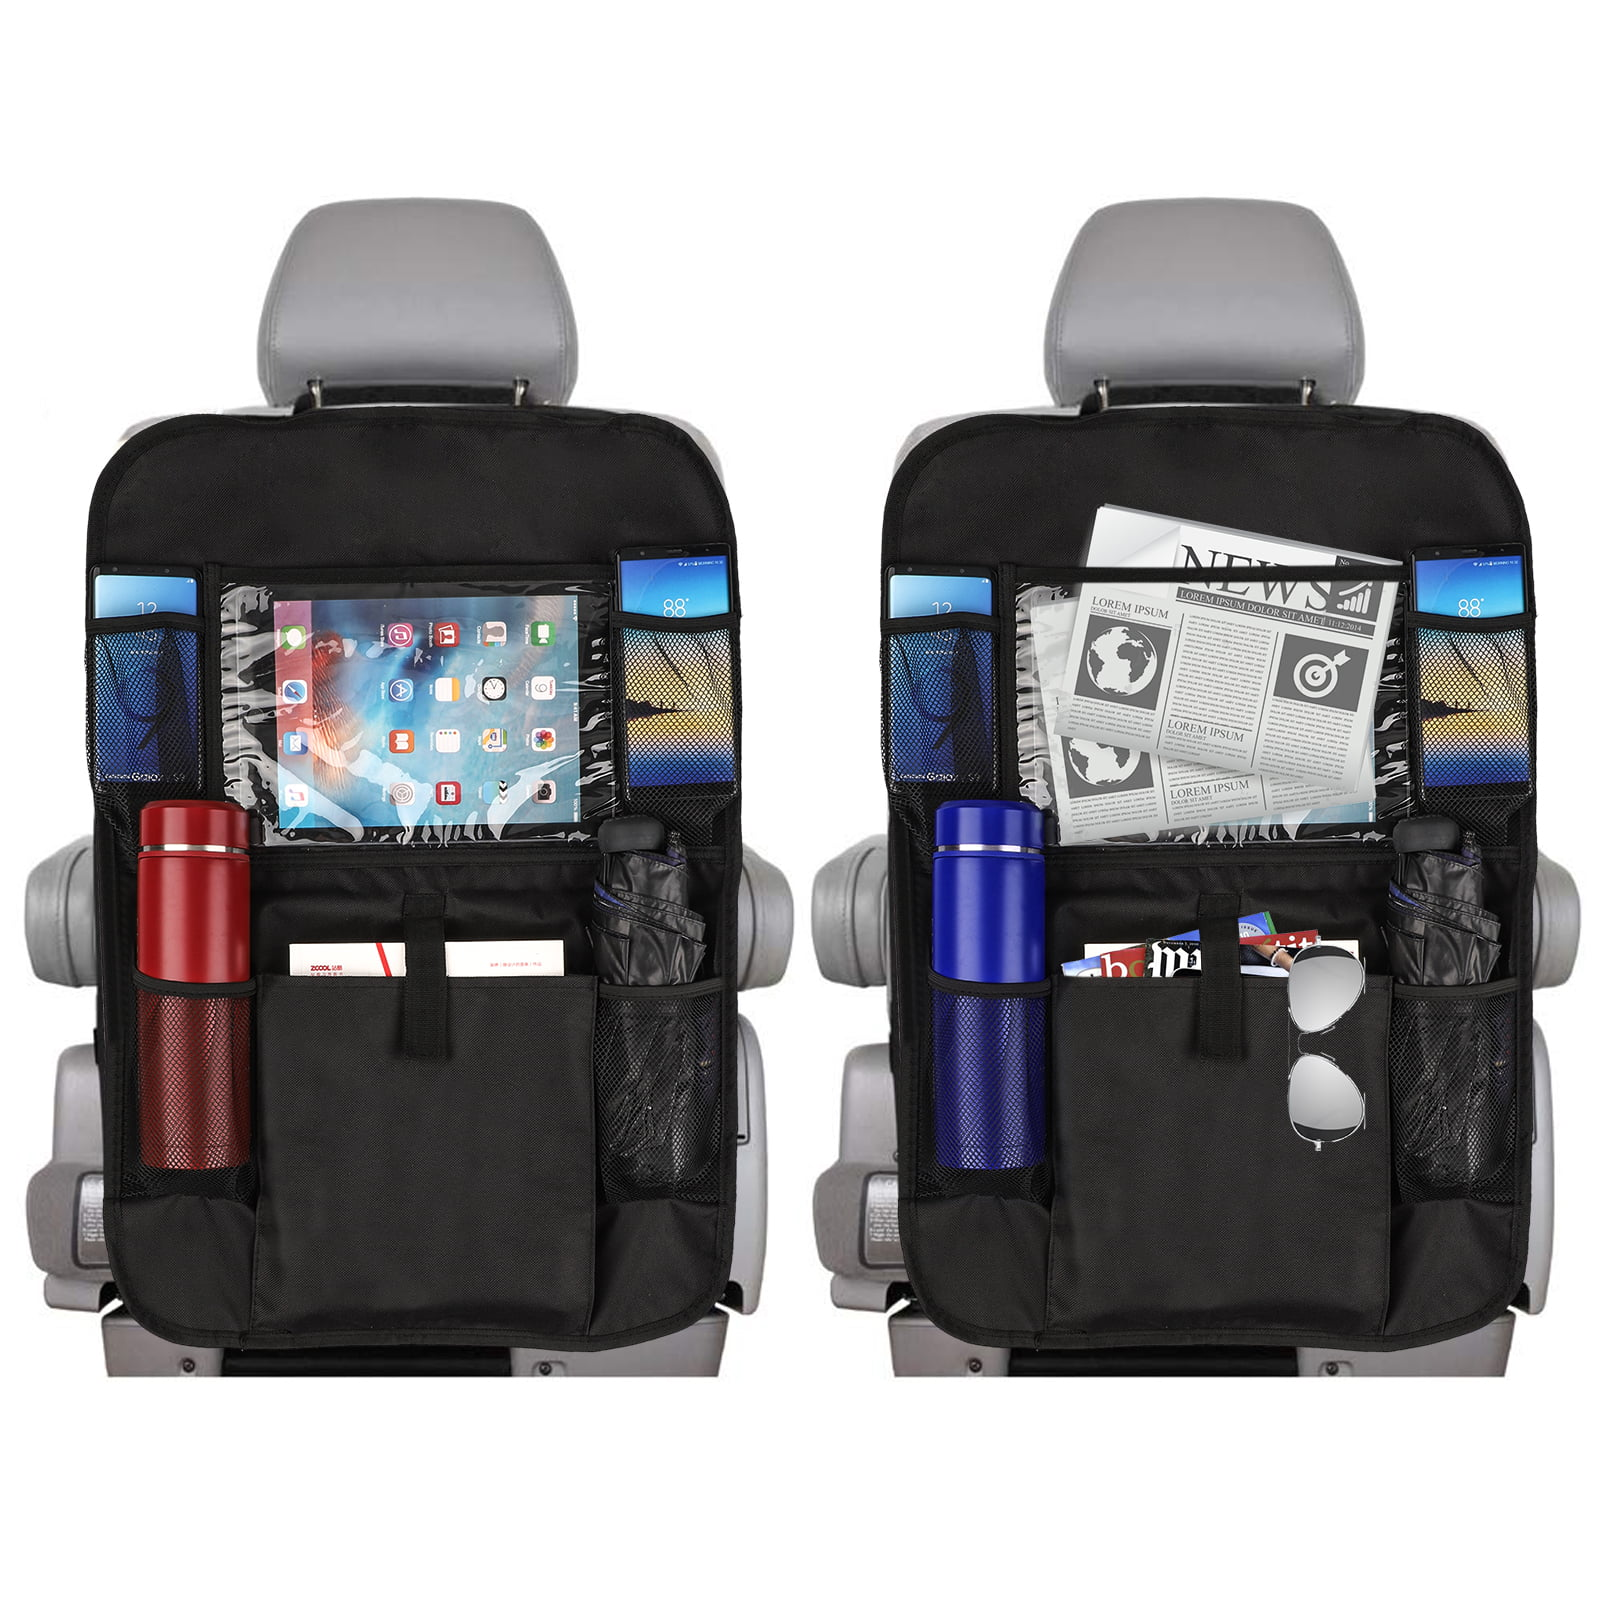 Black Car Backseat Organizer with Touch Screen Tablet Holder 9 Storage Pockets Kick Mats Car Seat Back Protectors Great Travel Accessories for Kids and Toddlers